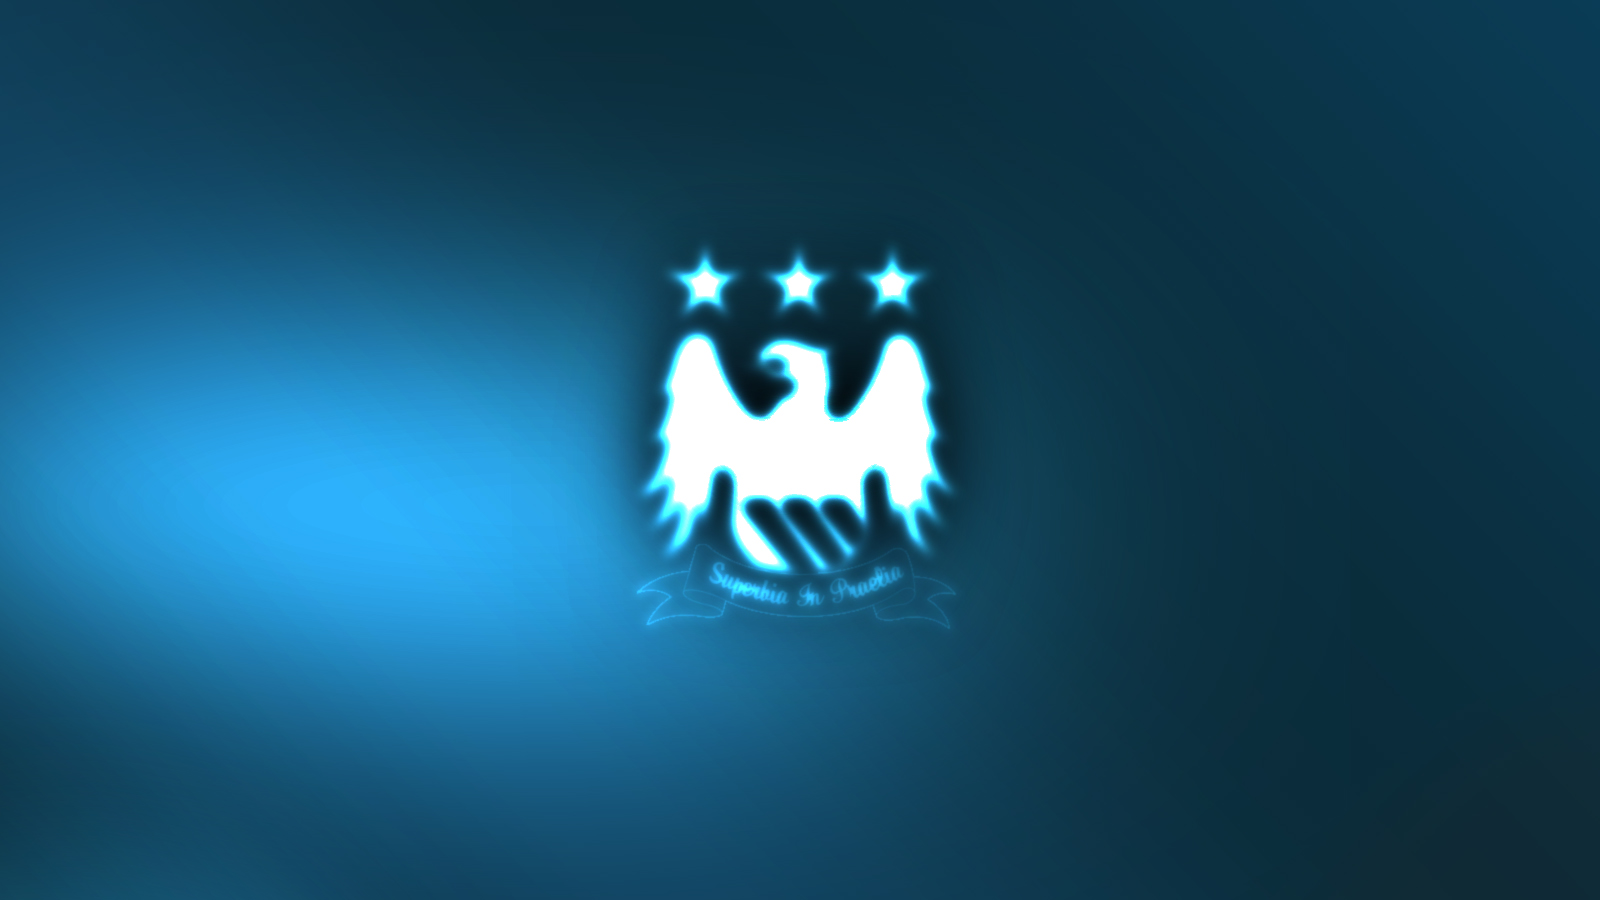 Blues Manchester City Wallpaper